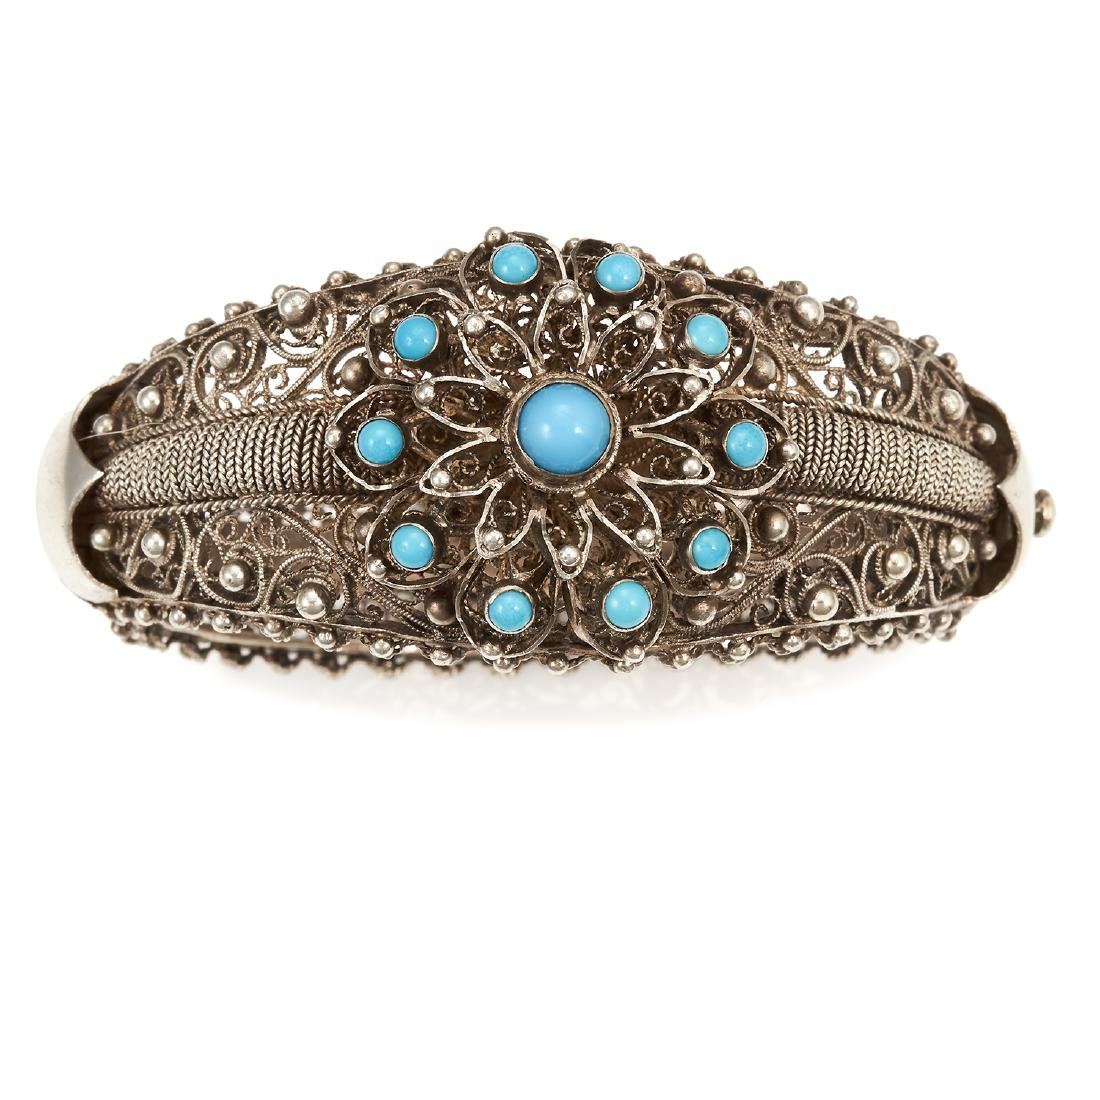 A TURQUOISE BANGLE, TOPAZIO in silver gilt, set with a